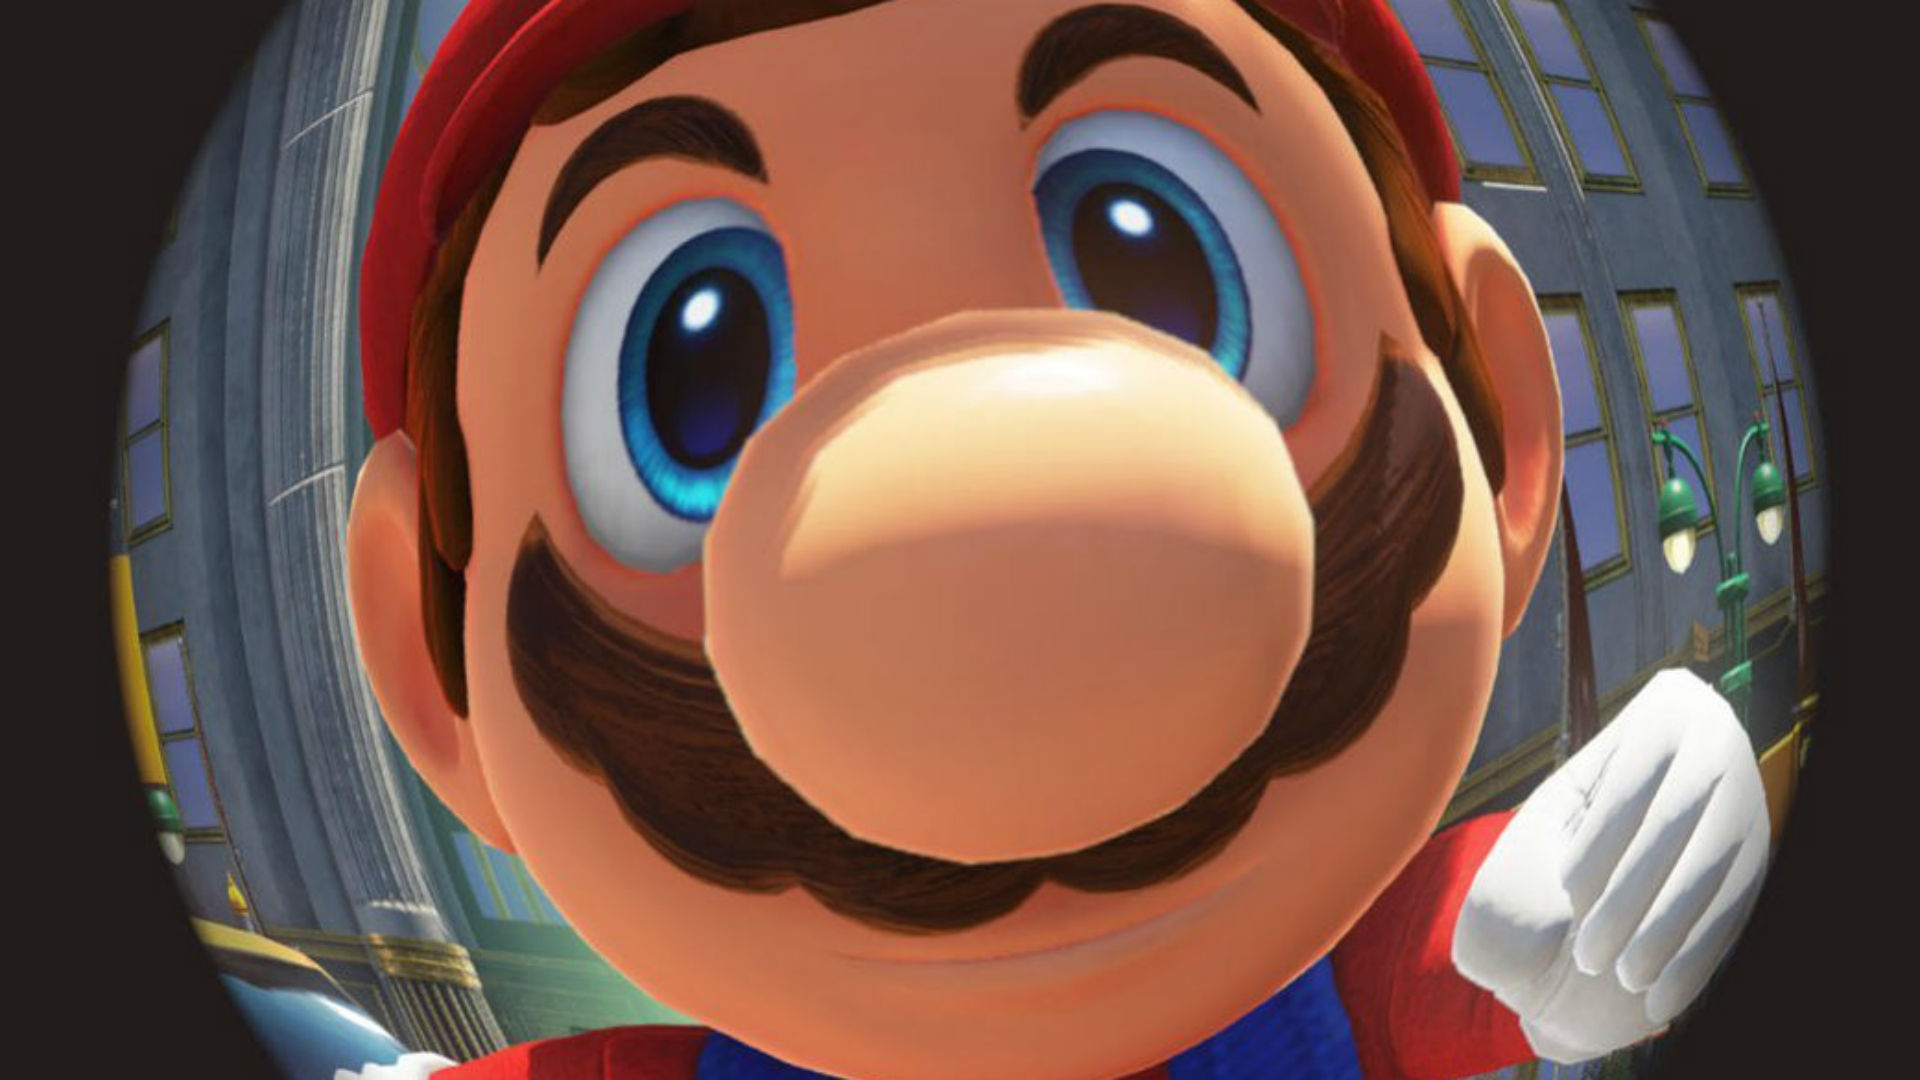 There could be a Super Mario movie from the Despicable Me and Minions studio screenshot